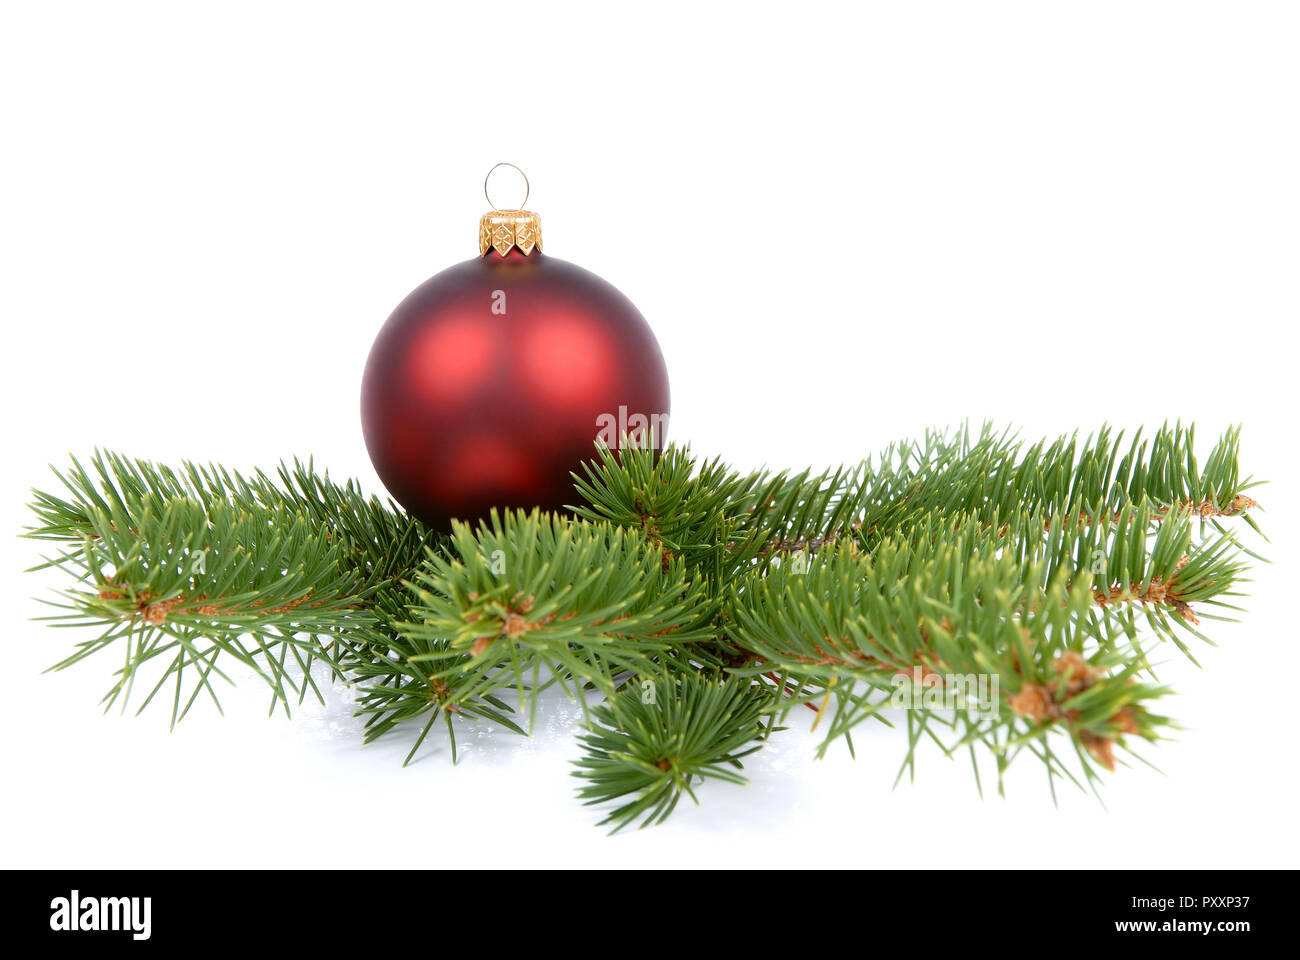 Christmas Green And Red.Red Christmas Ball On A Branch Of Green Christmas Tree Stock